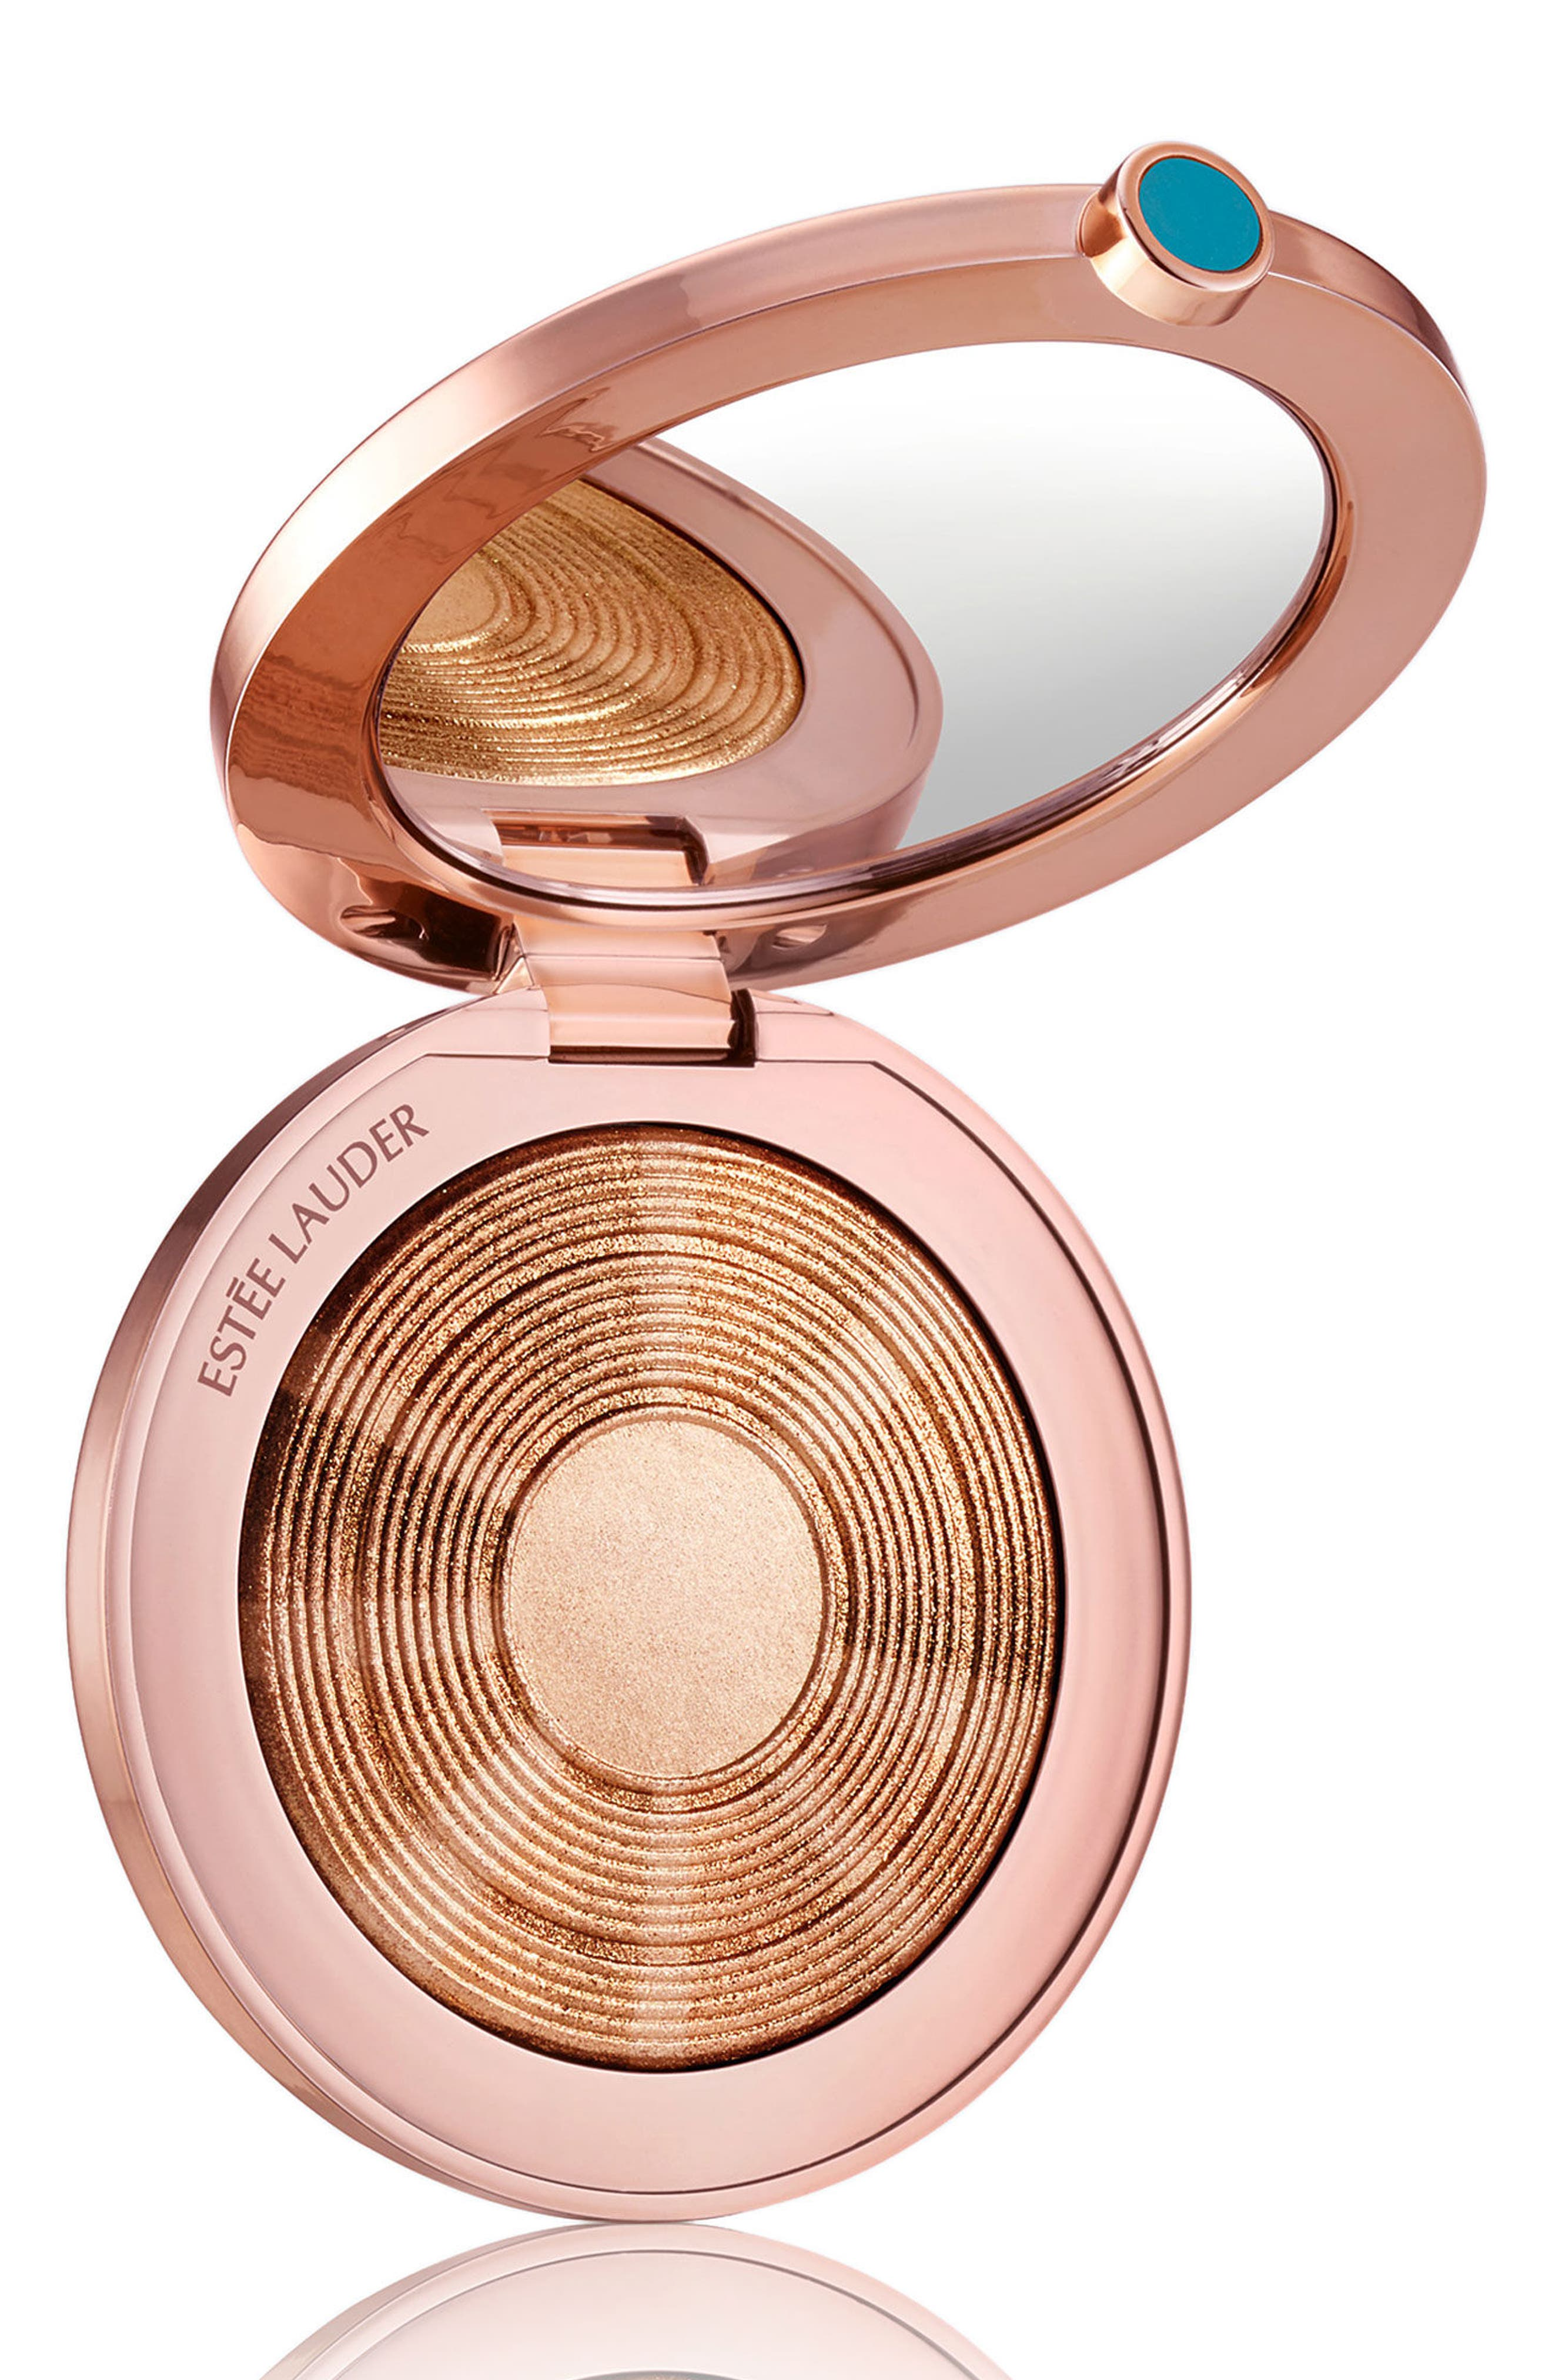 Bronze Goddess Illuminating Powder Gelée,                             Main thumbnail 1, color,